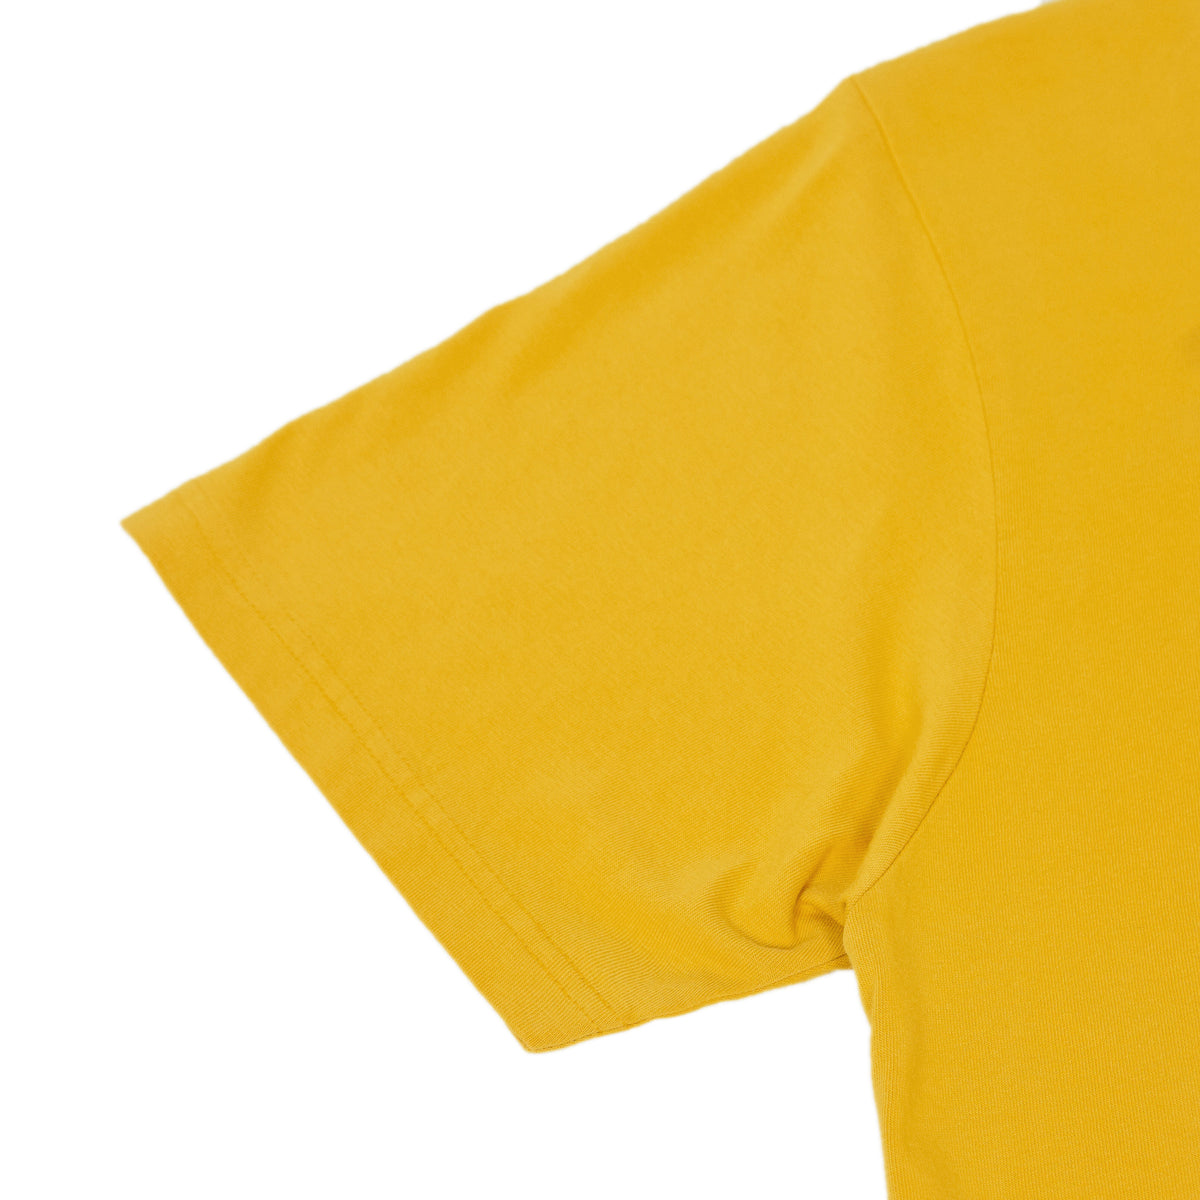 Colorful Standard Organic Cotton Tee Burned Yellow arm